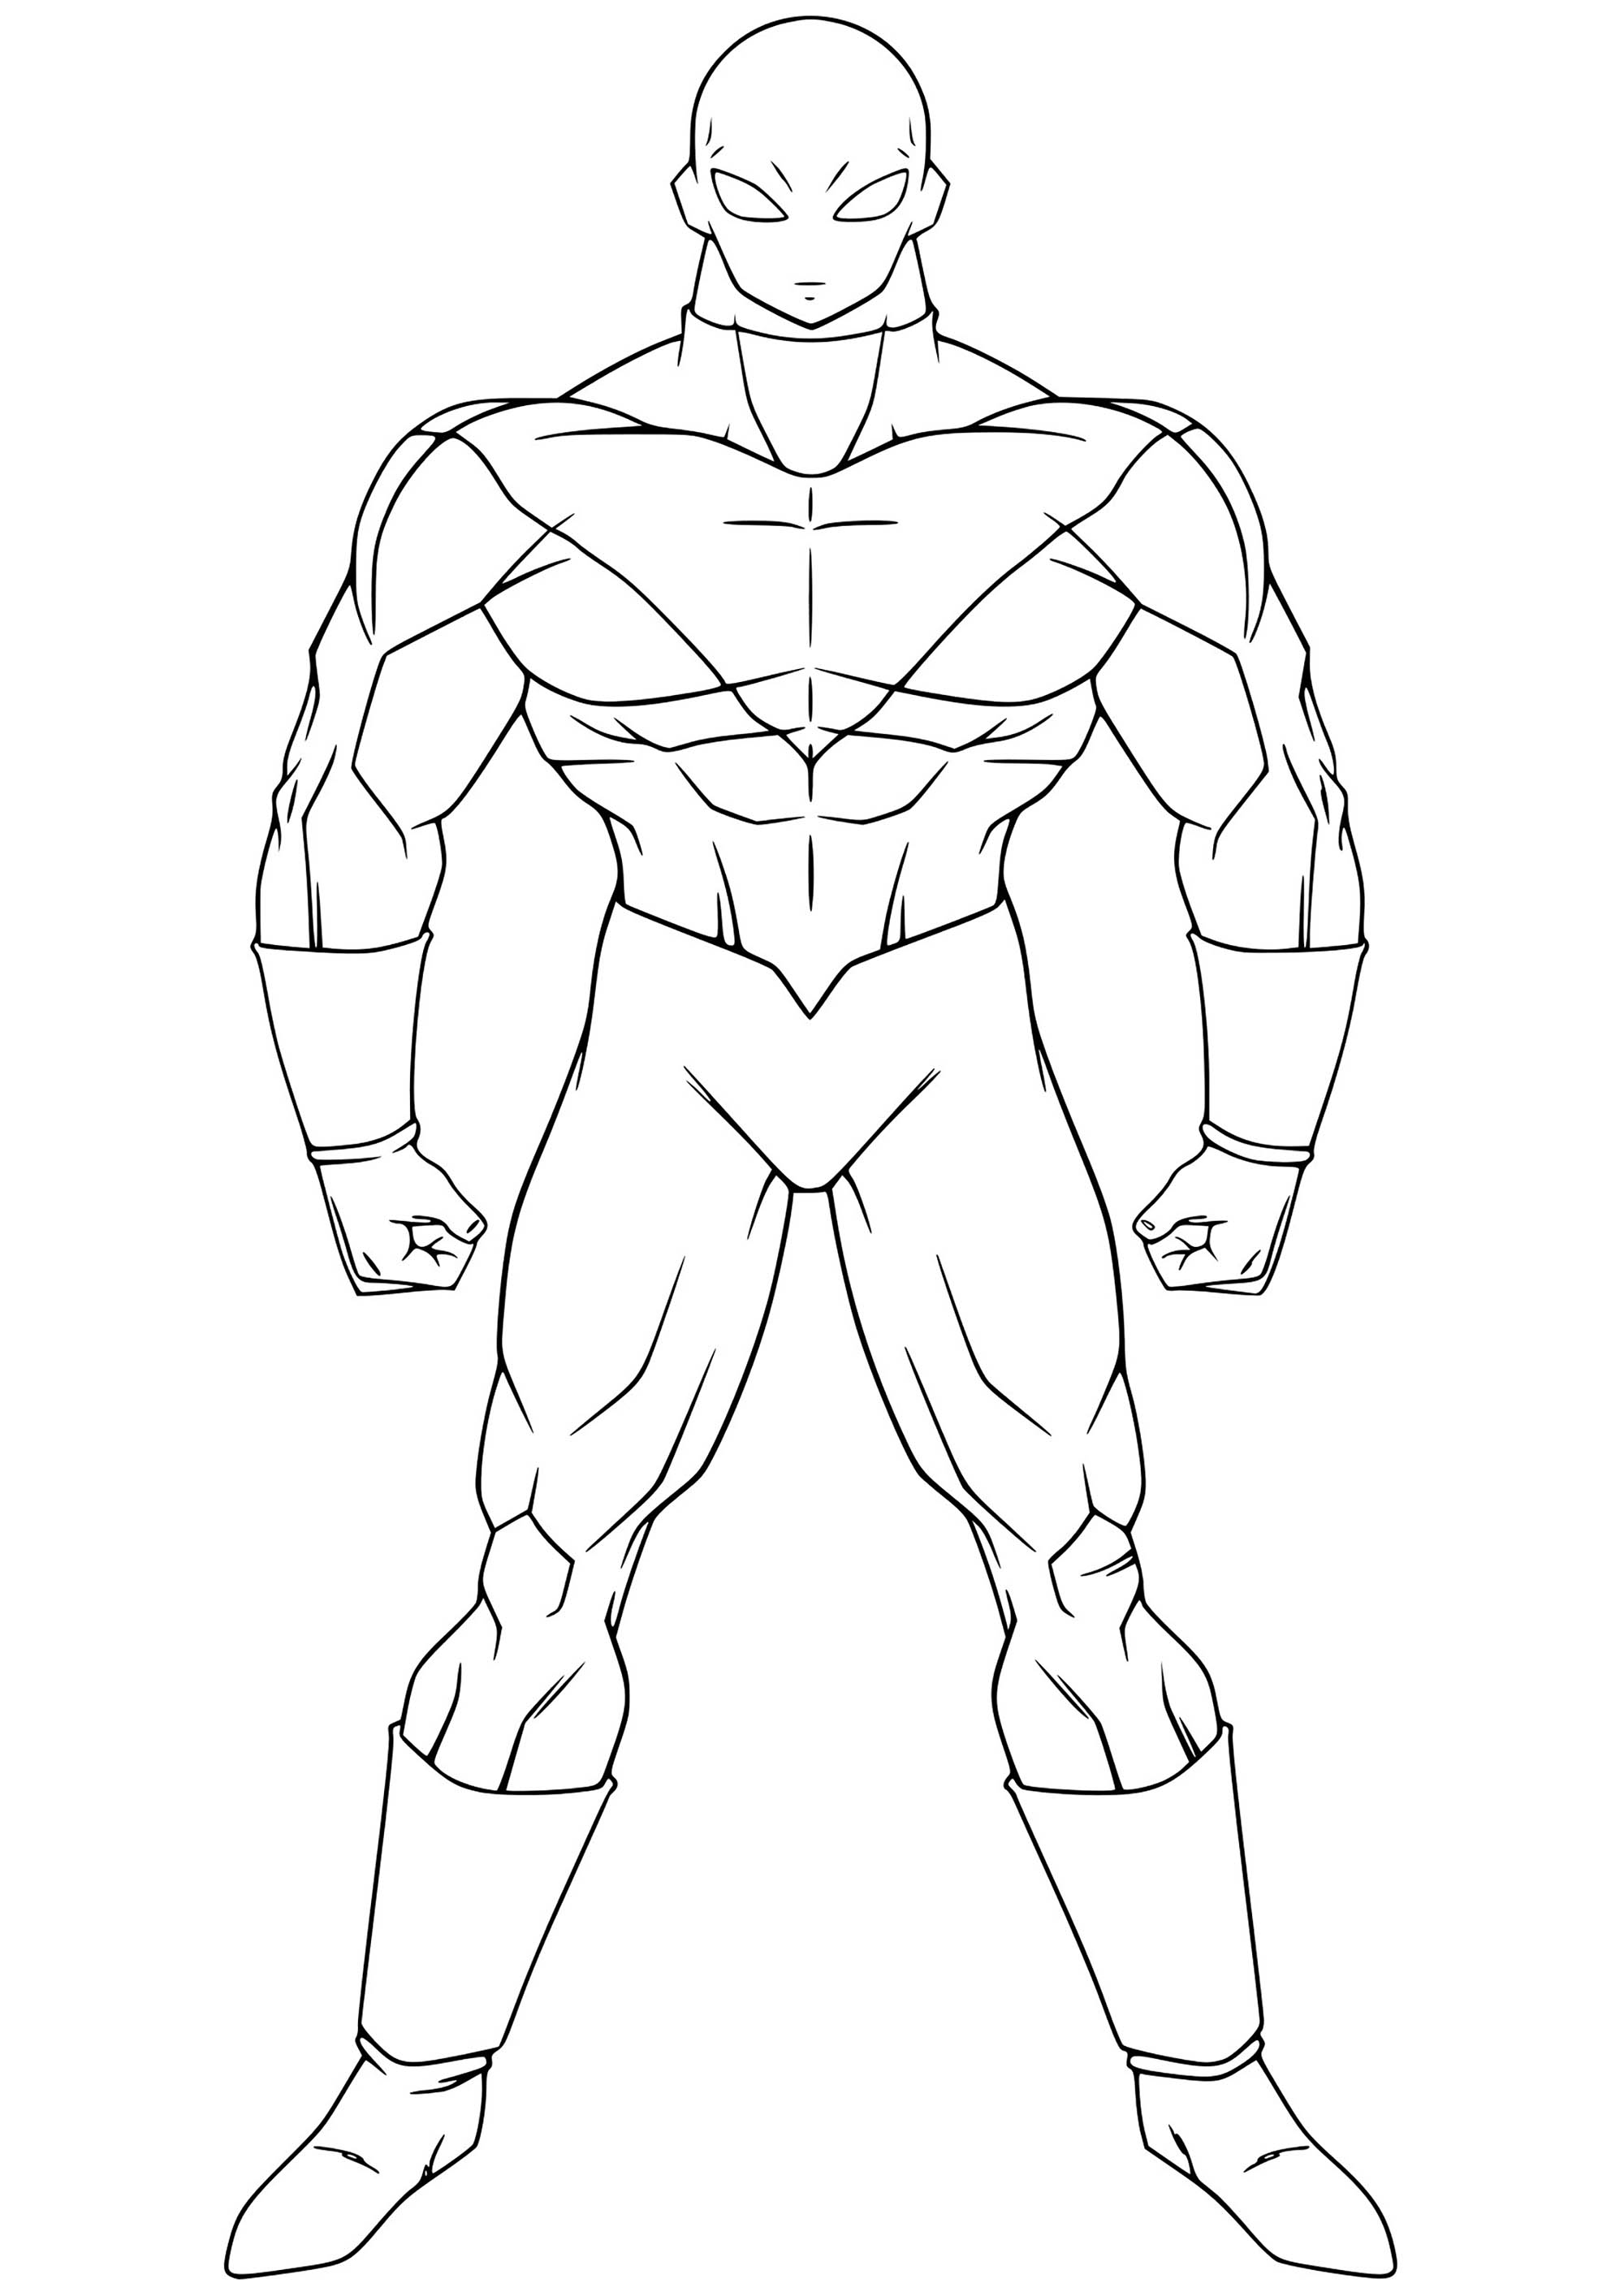 Jiren Coloriage Dragon Ball Z Coloriages Pour Enfants